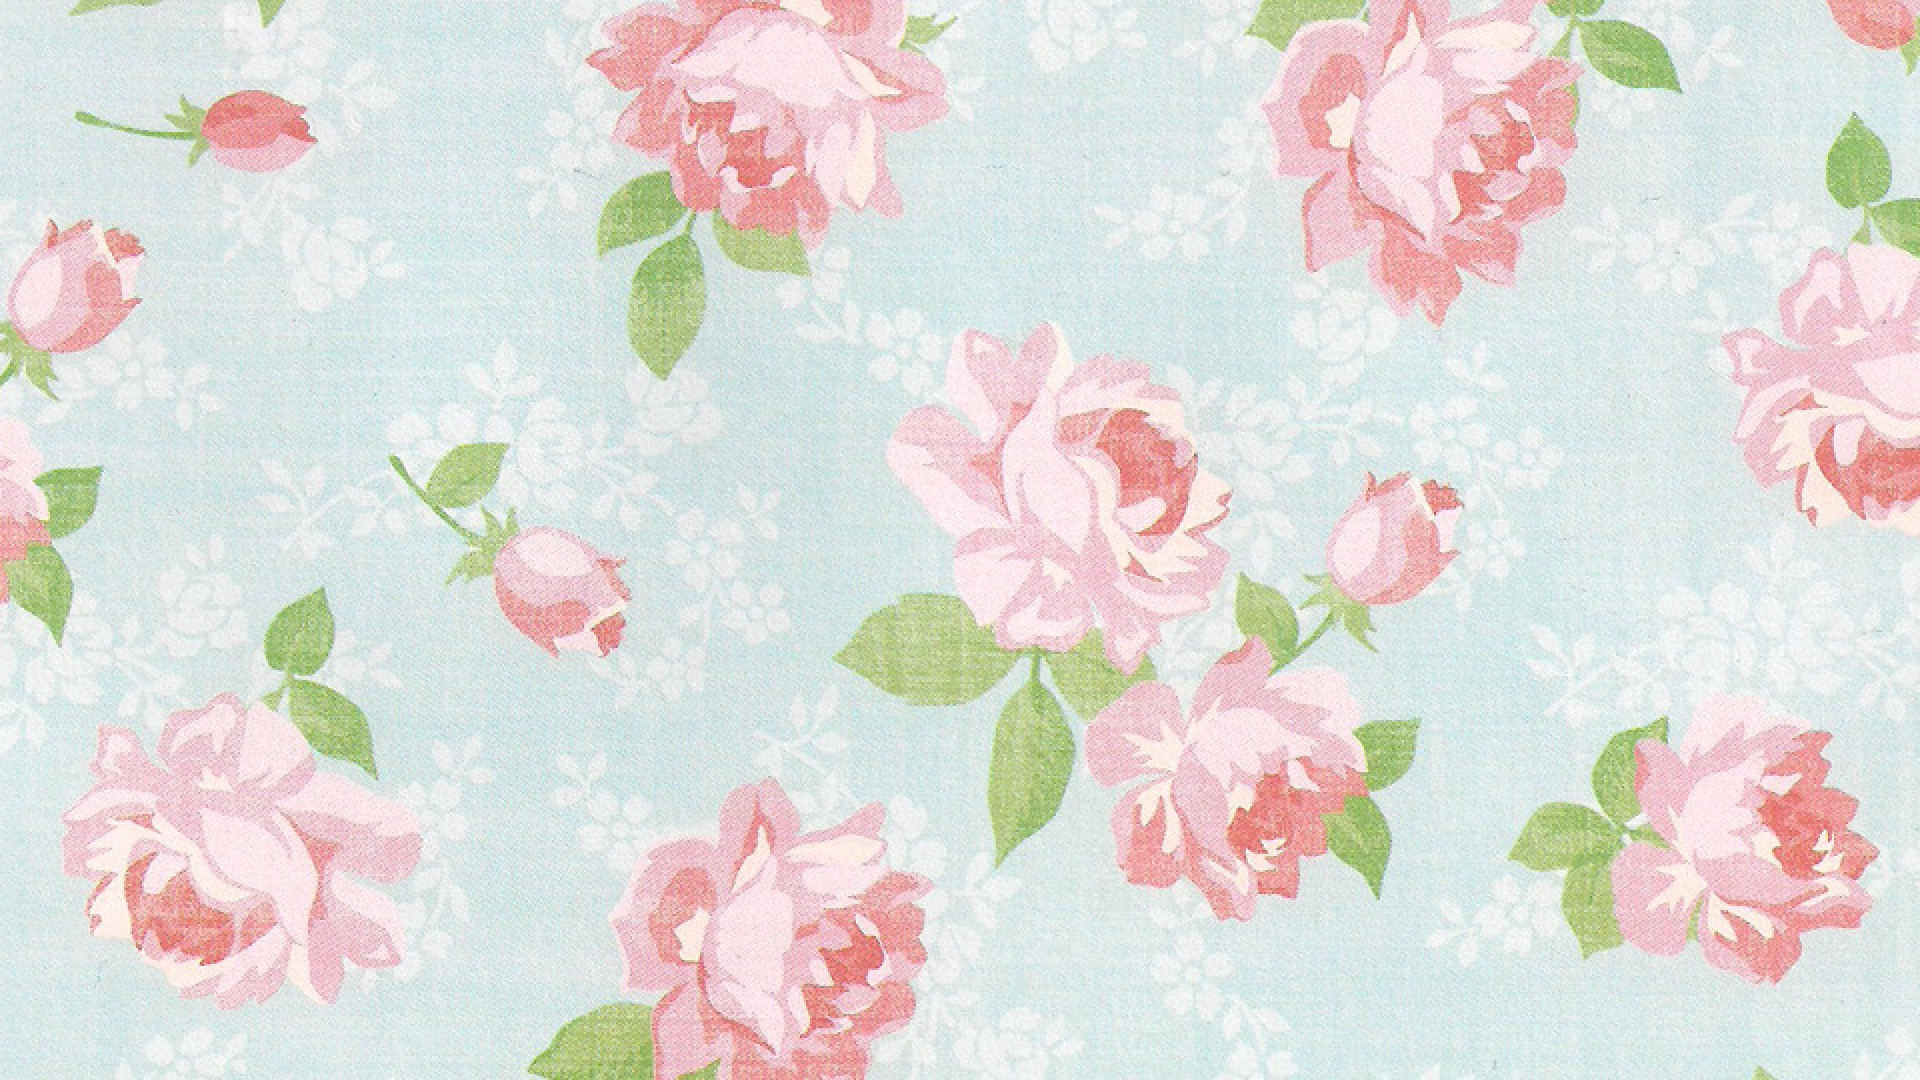 Hd Vintage Flower Backgrounds Pixelstalk Net